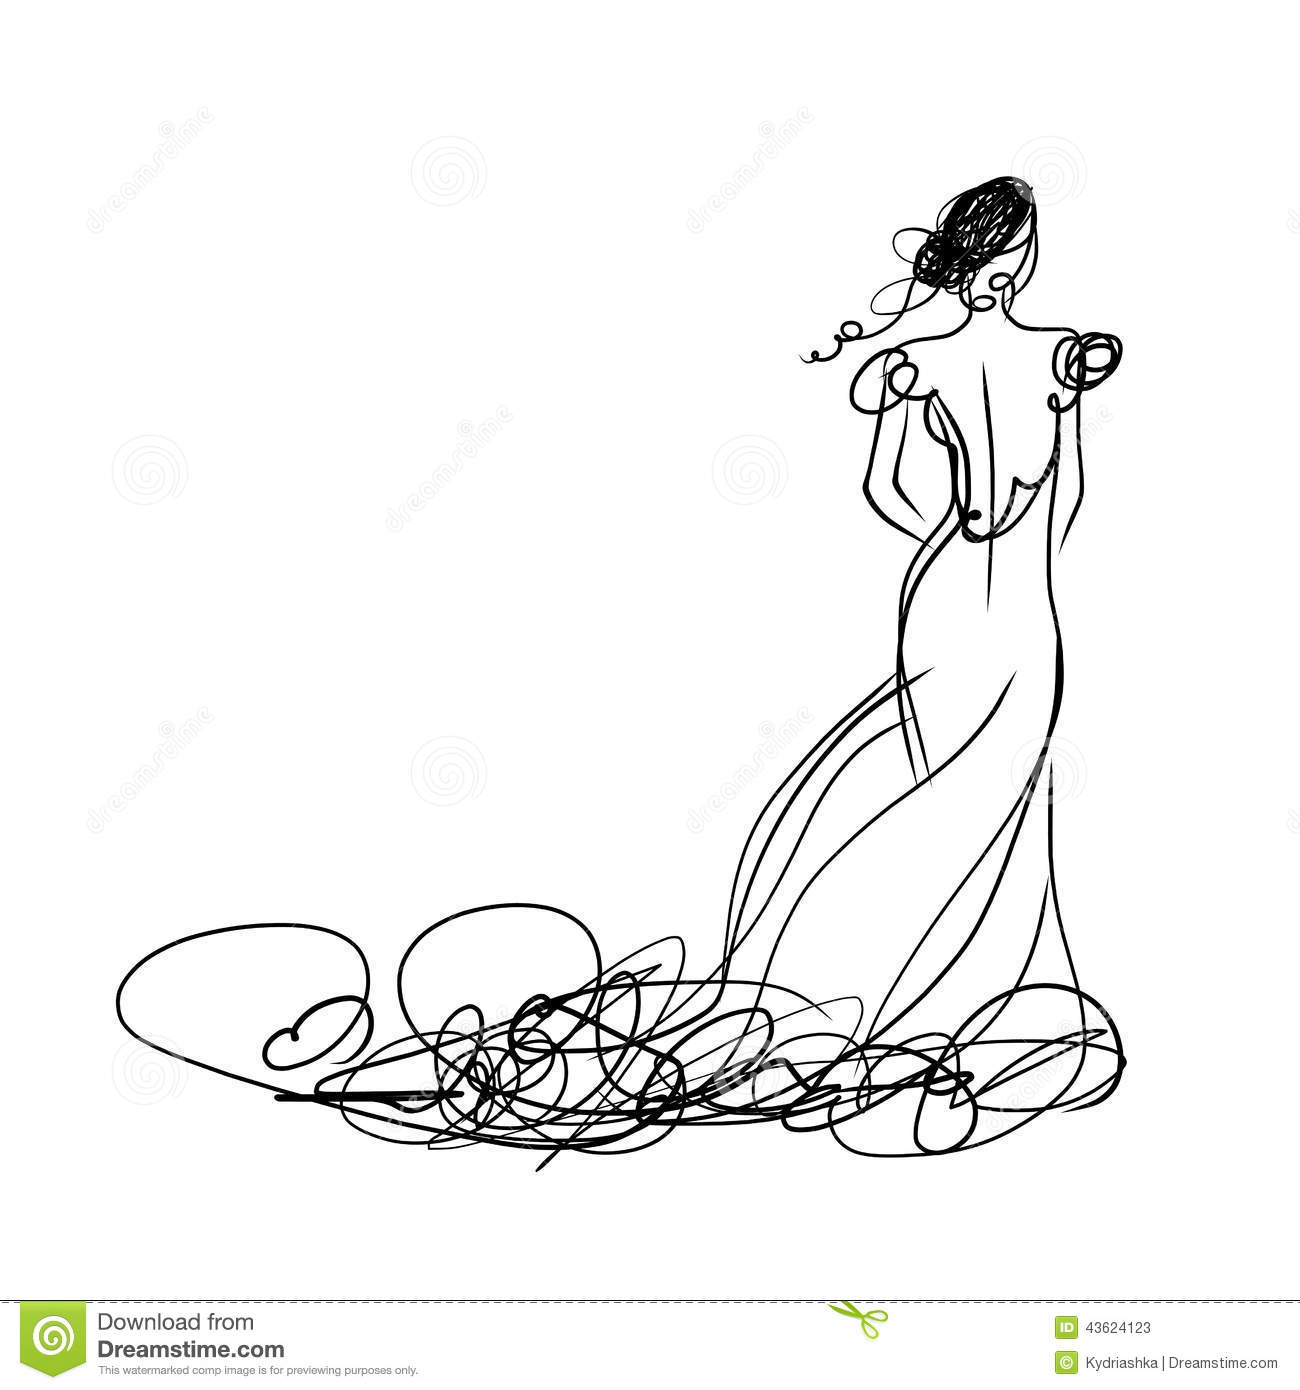 Bride In White Dress Sketch For Your Design Stock Vector